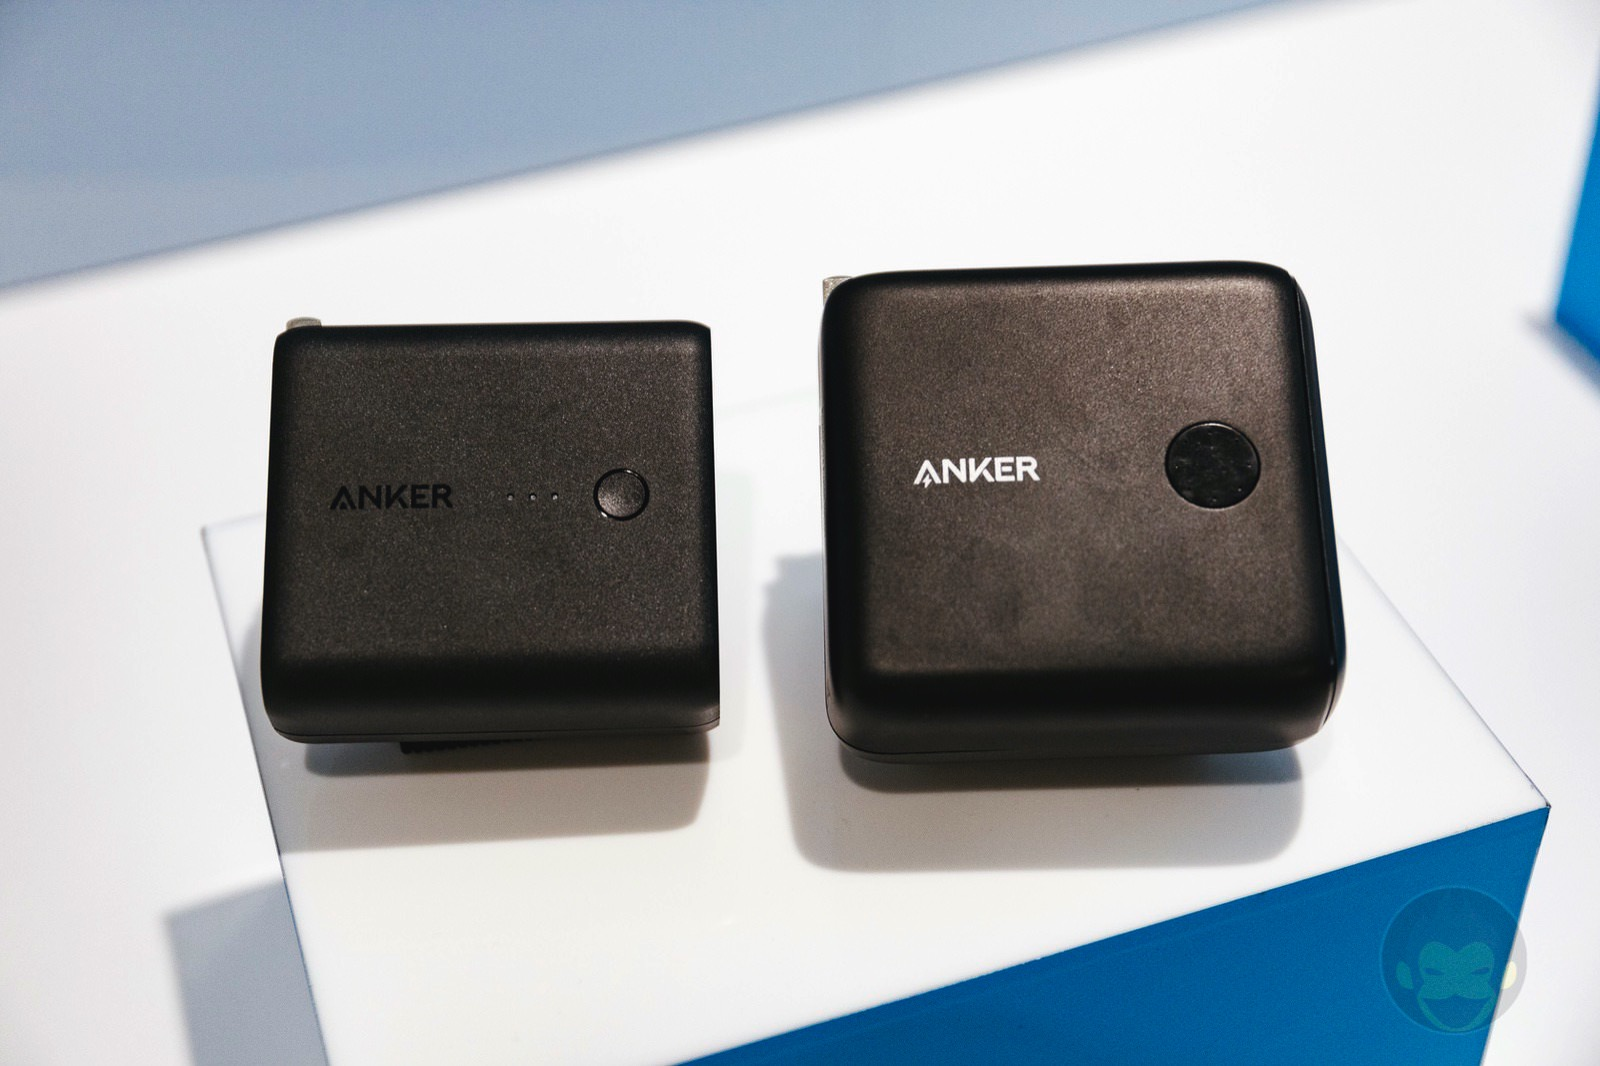 Anker-Press-Conference-2018-New-Products-26.jpg